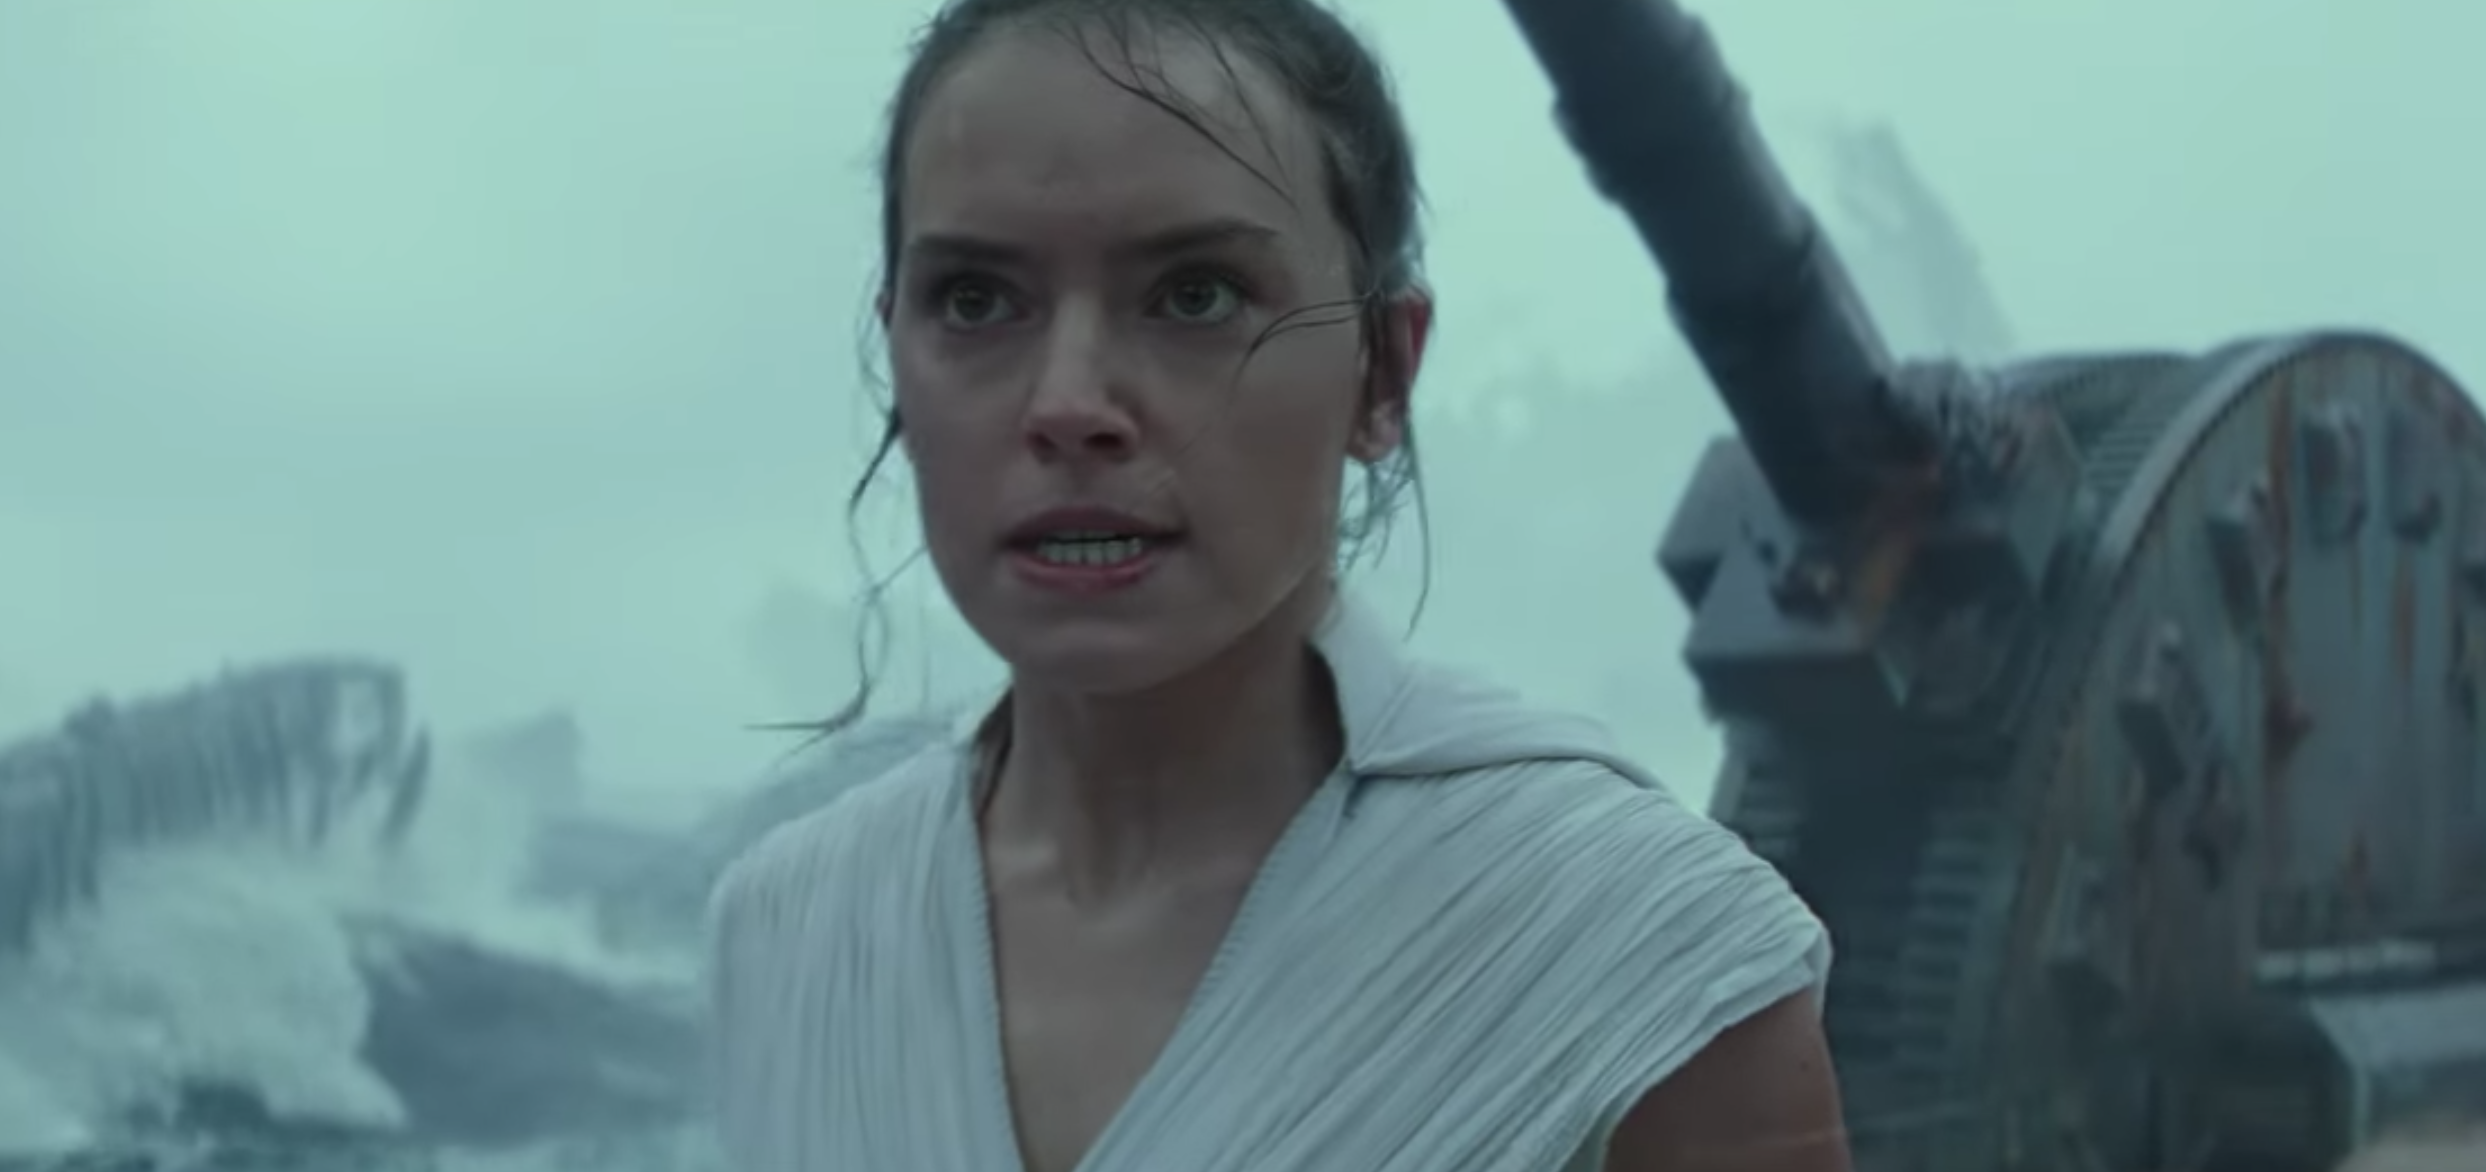 The 'Star Wars: The Rise of Skywalker' Trailer Is Finally Here